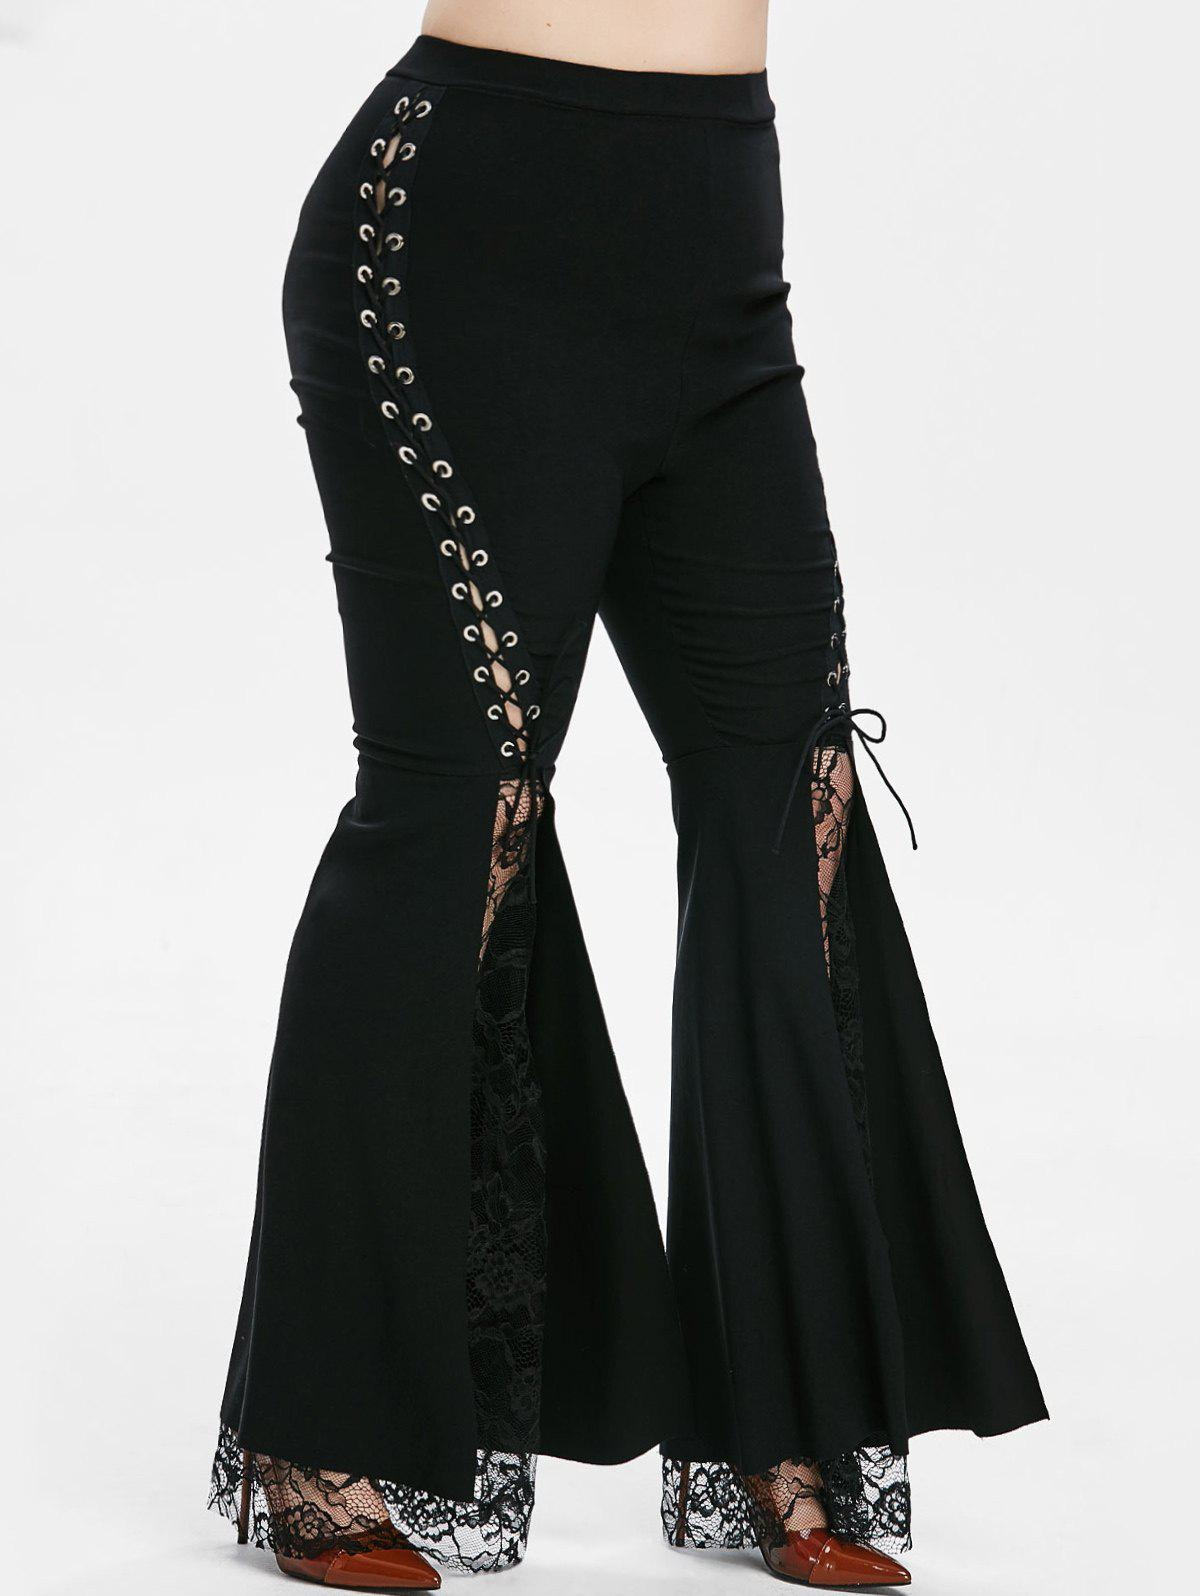 Lace Panel Lace Up High Waisted Plus Size Flare Pants - BLACK 2X